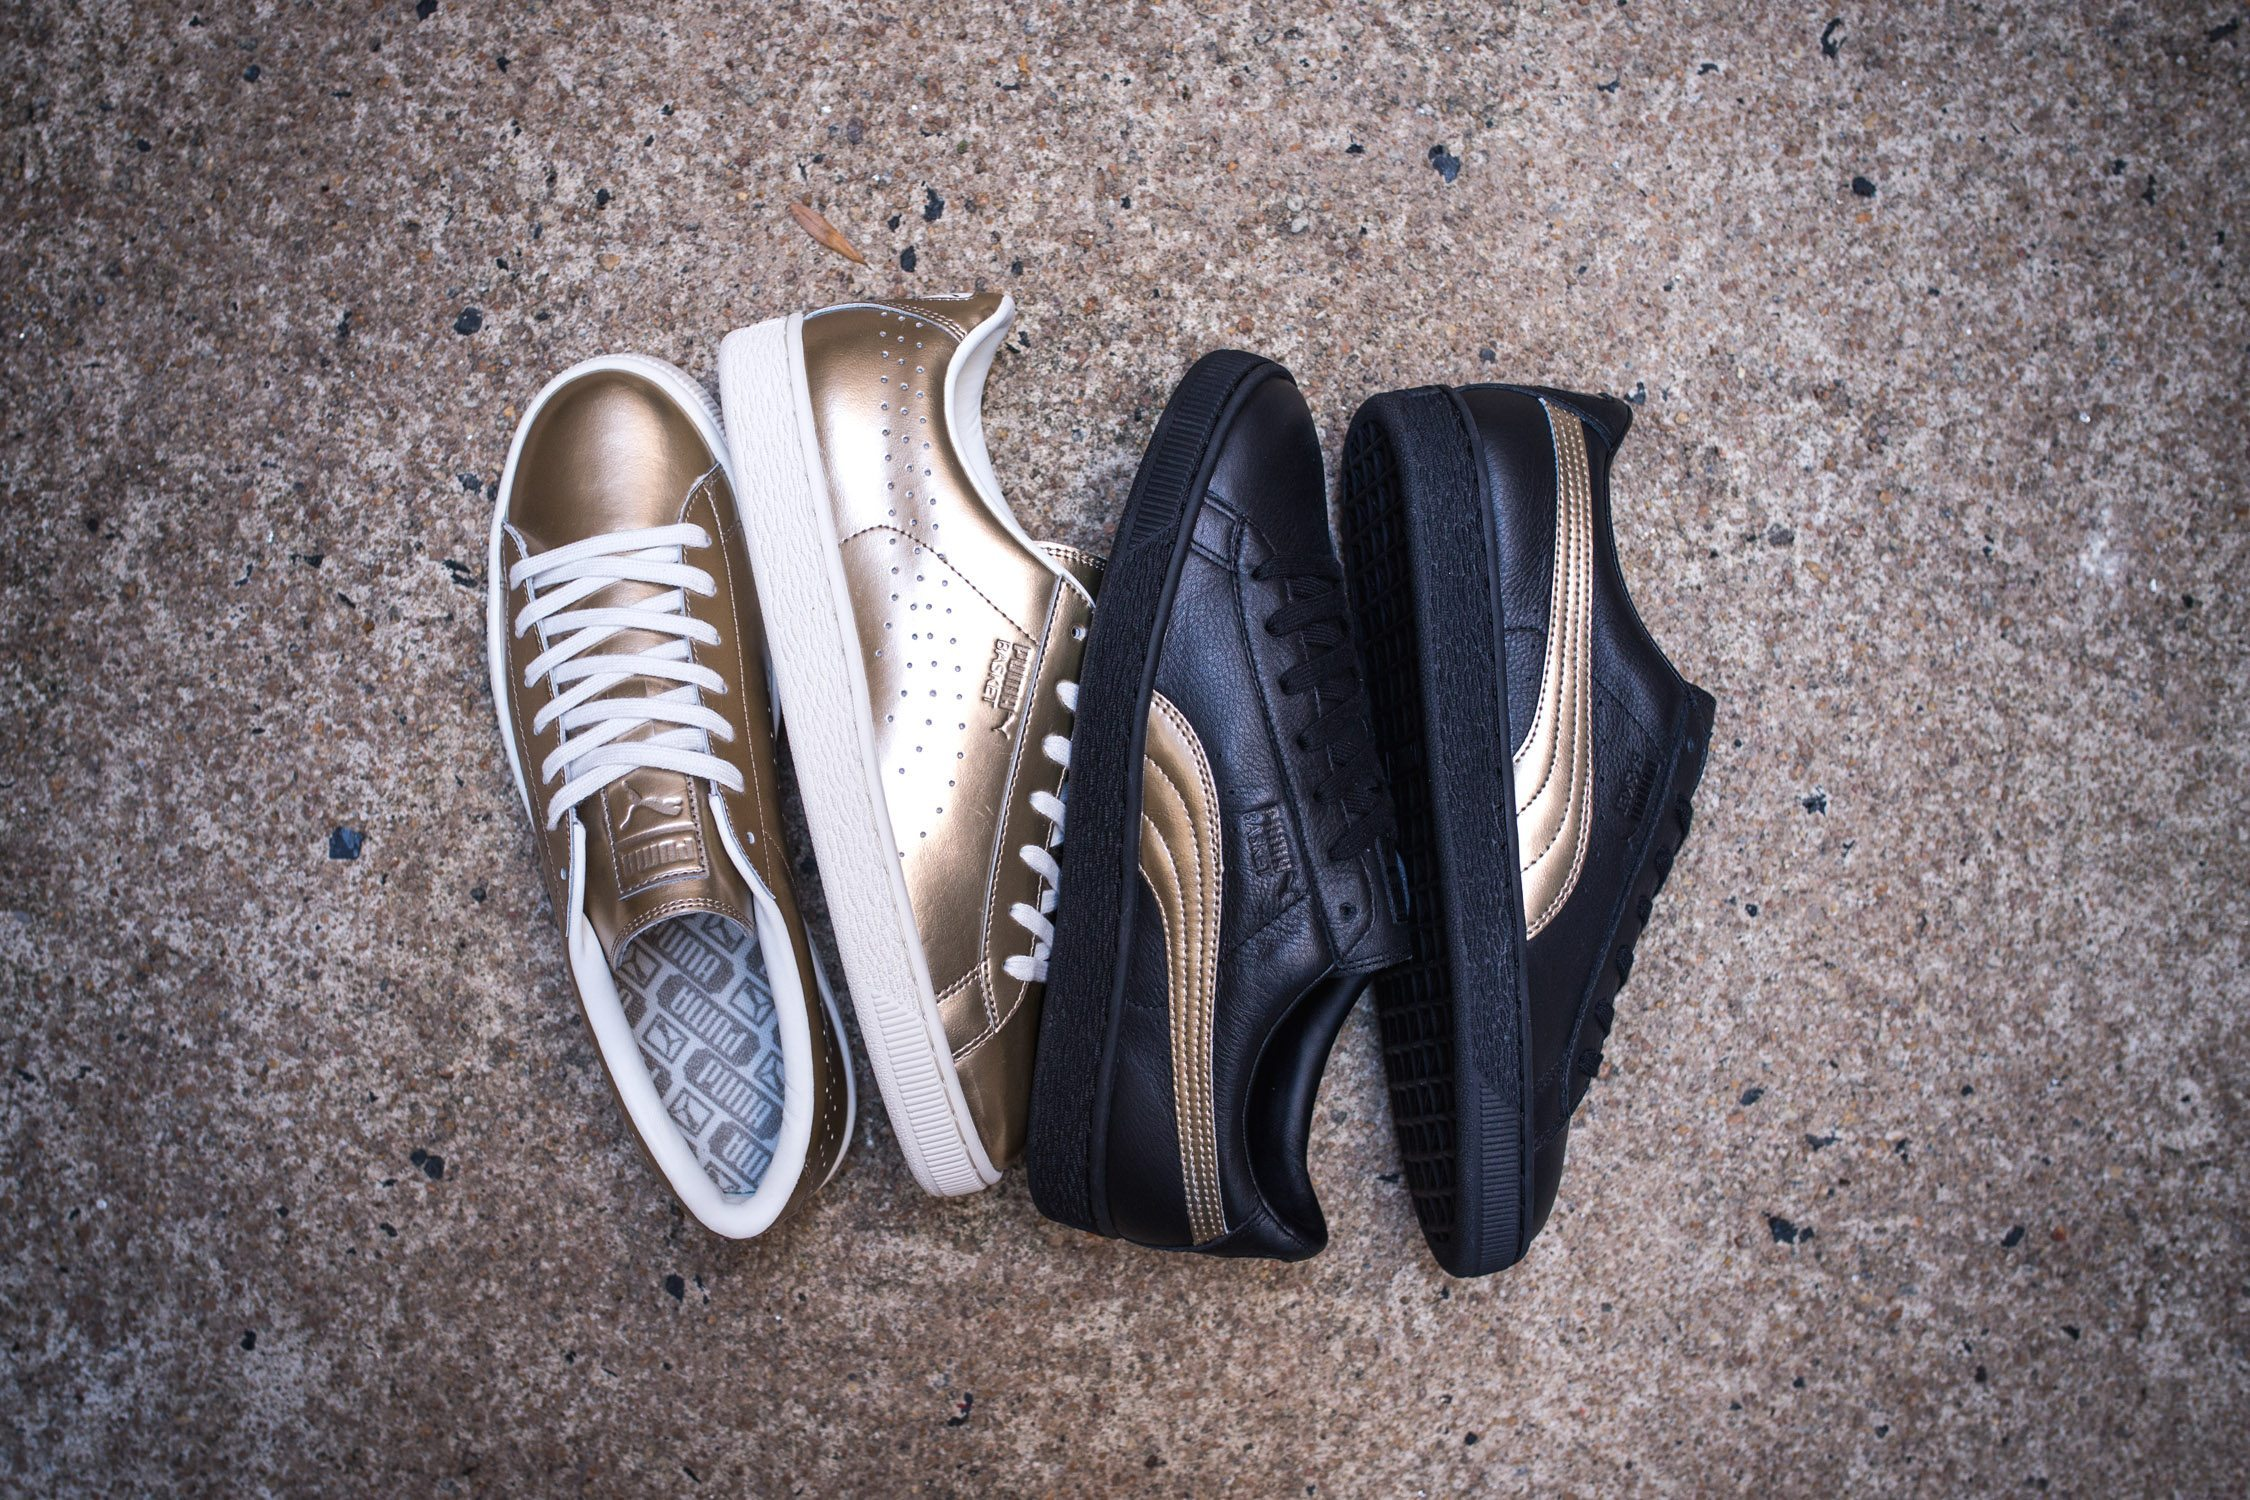 SNIPES x PUMA Basket Metallic Pack 7